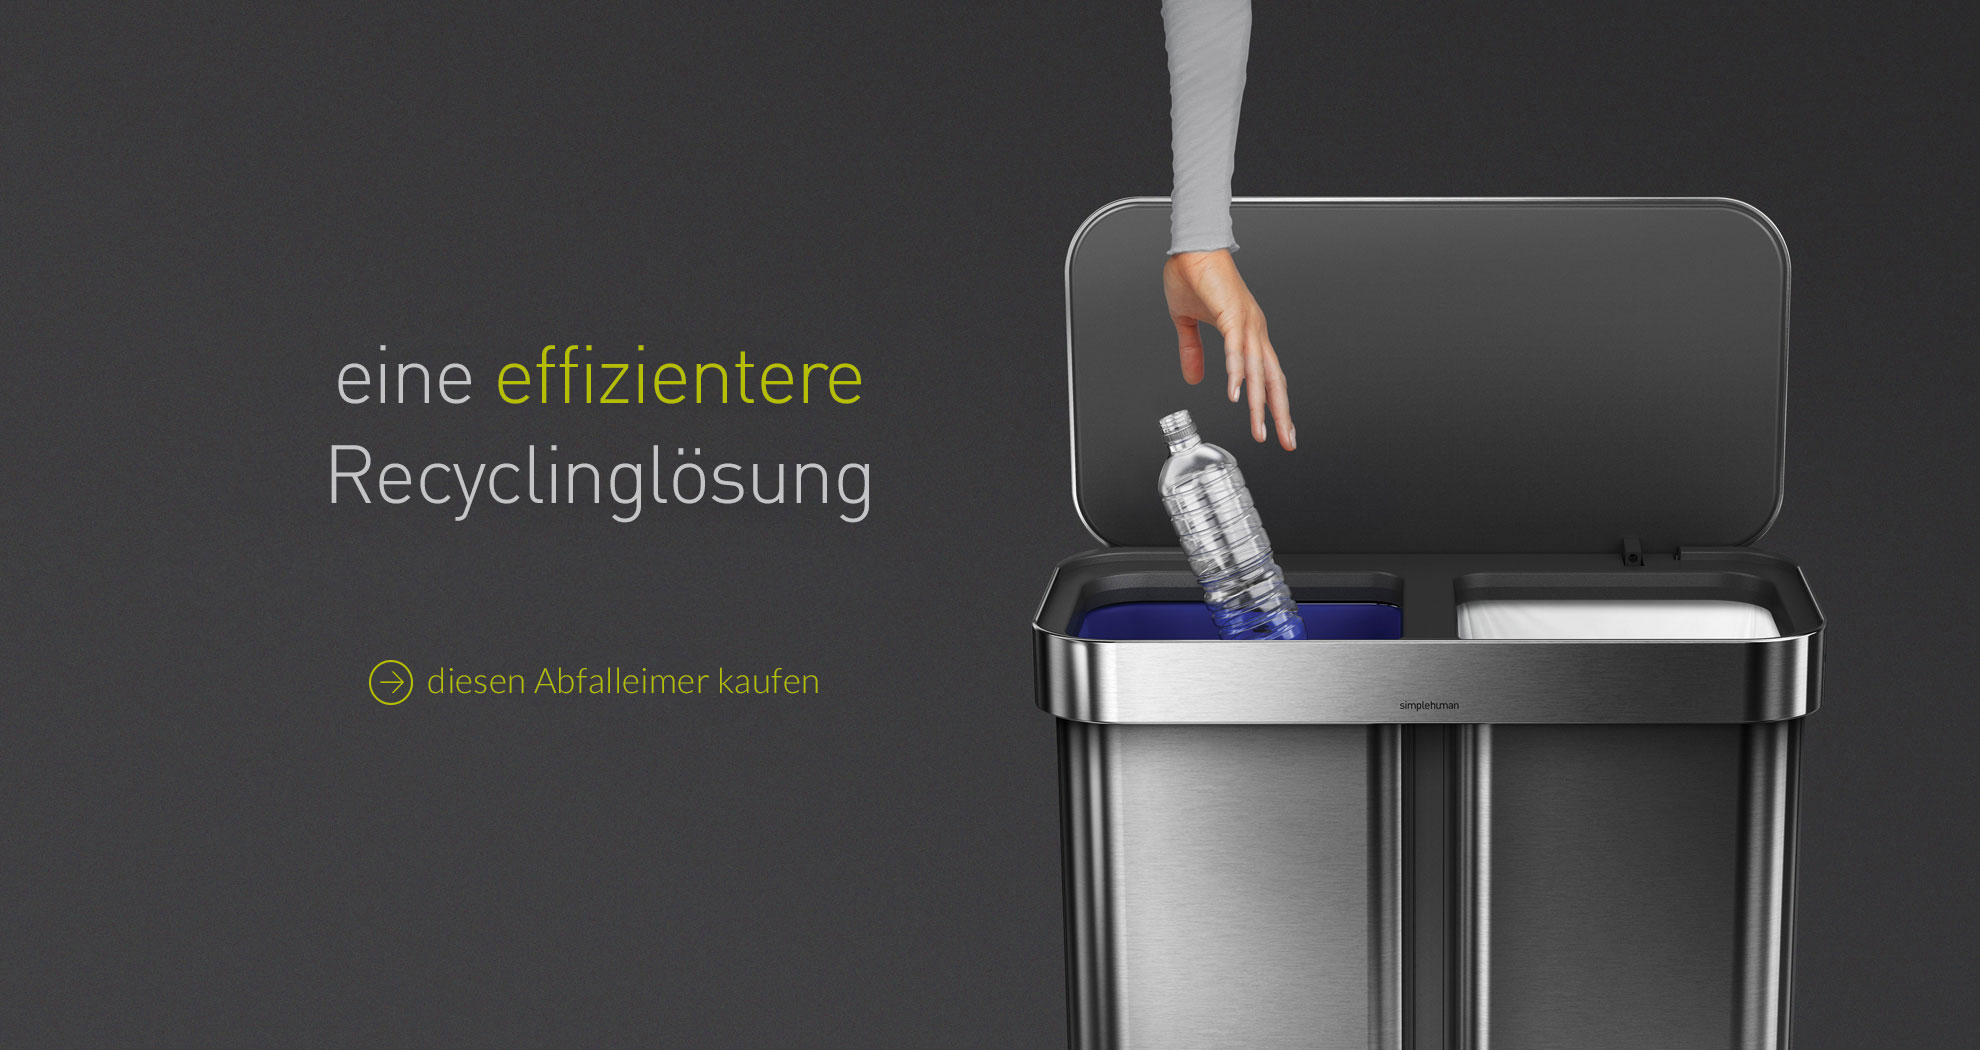 a more efficient recycling solution